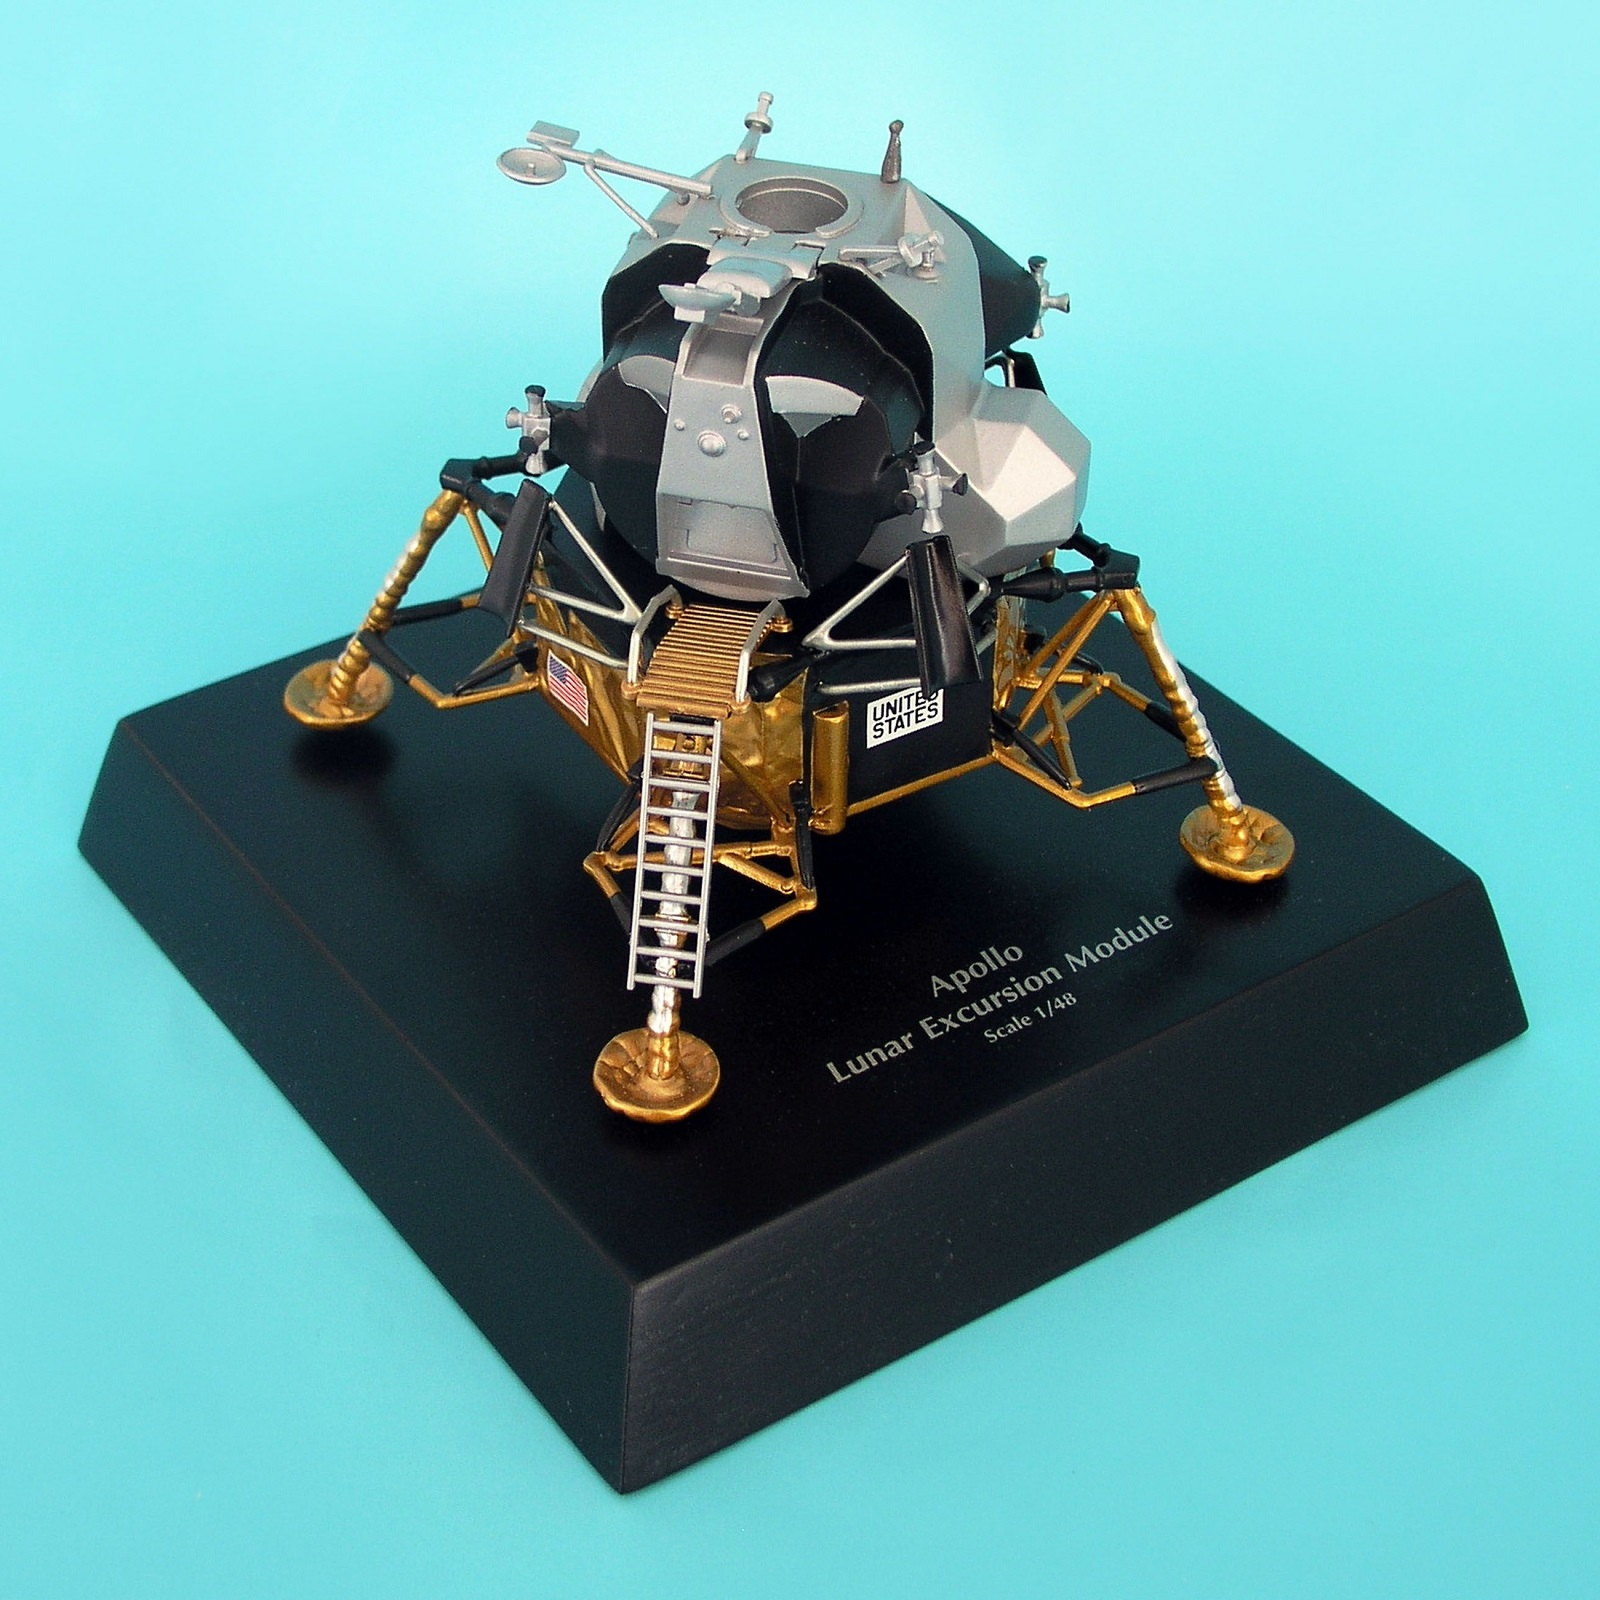 Apollo Lunar Excursion Module